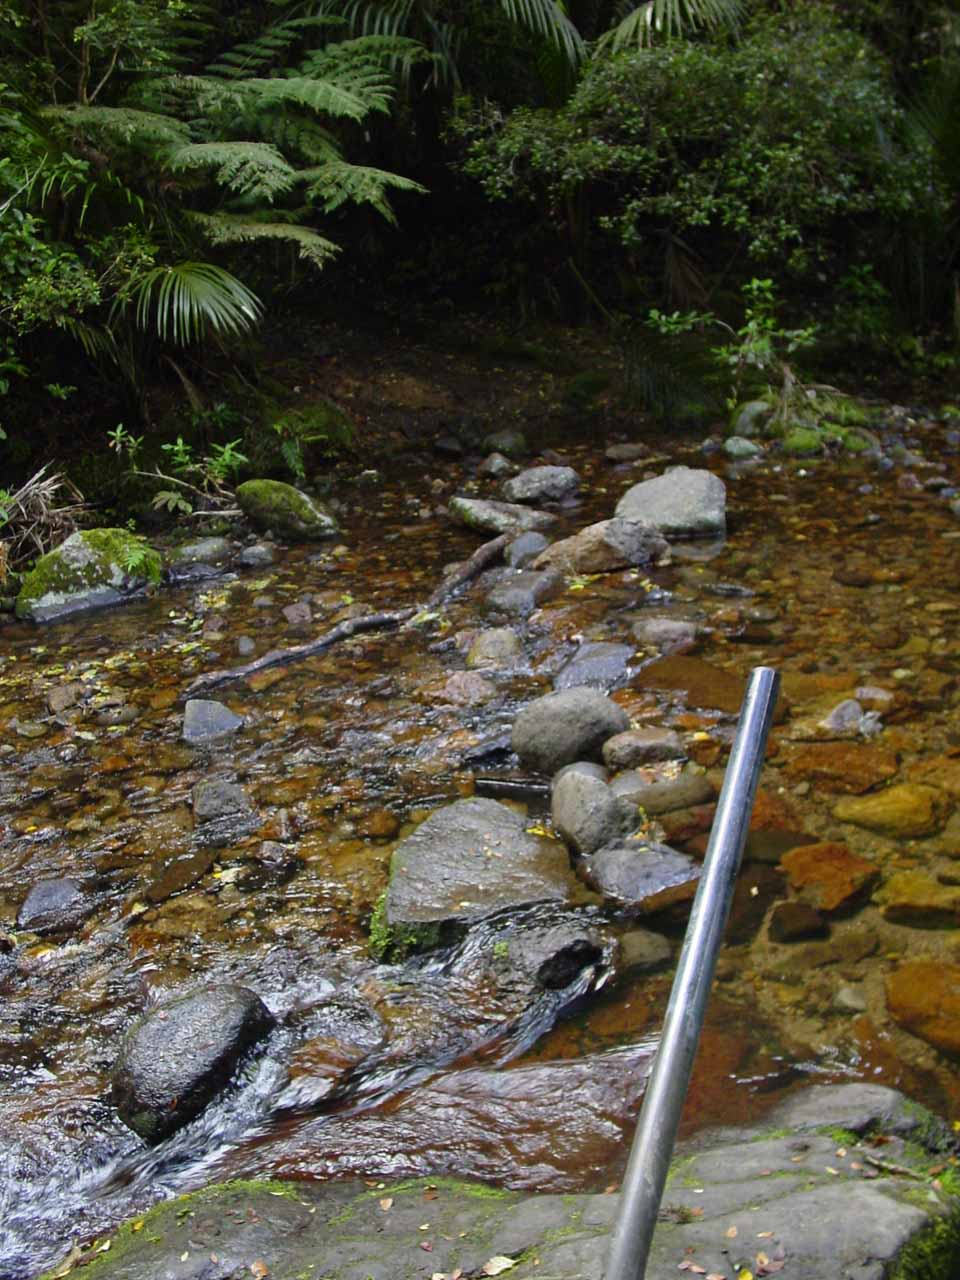 This was the second stream crossing that I encountered en route to Wentworth Falls